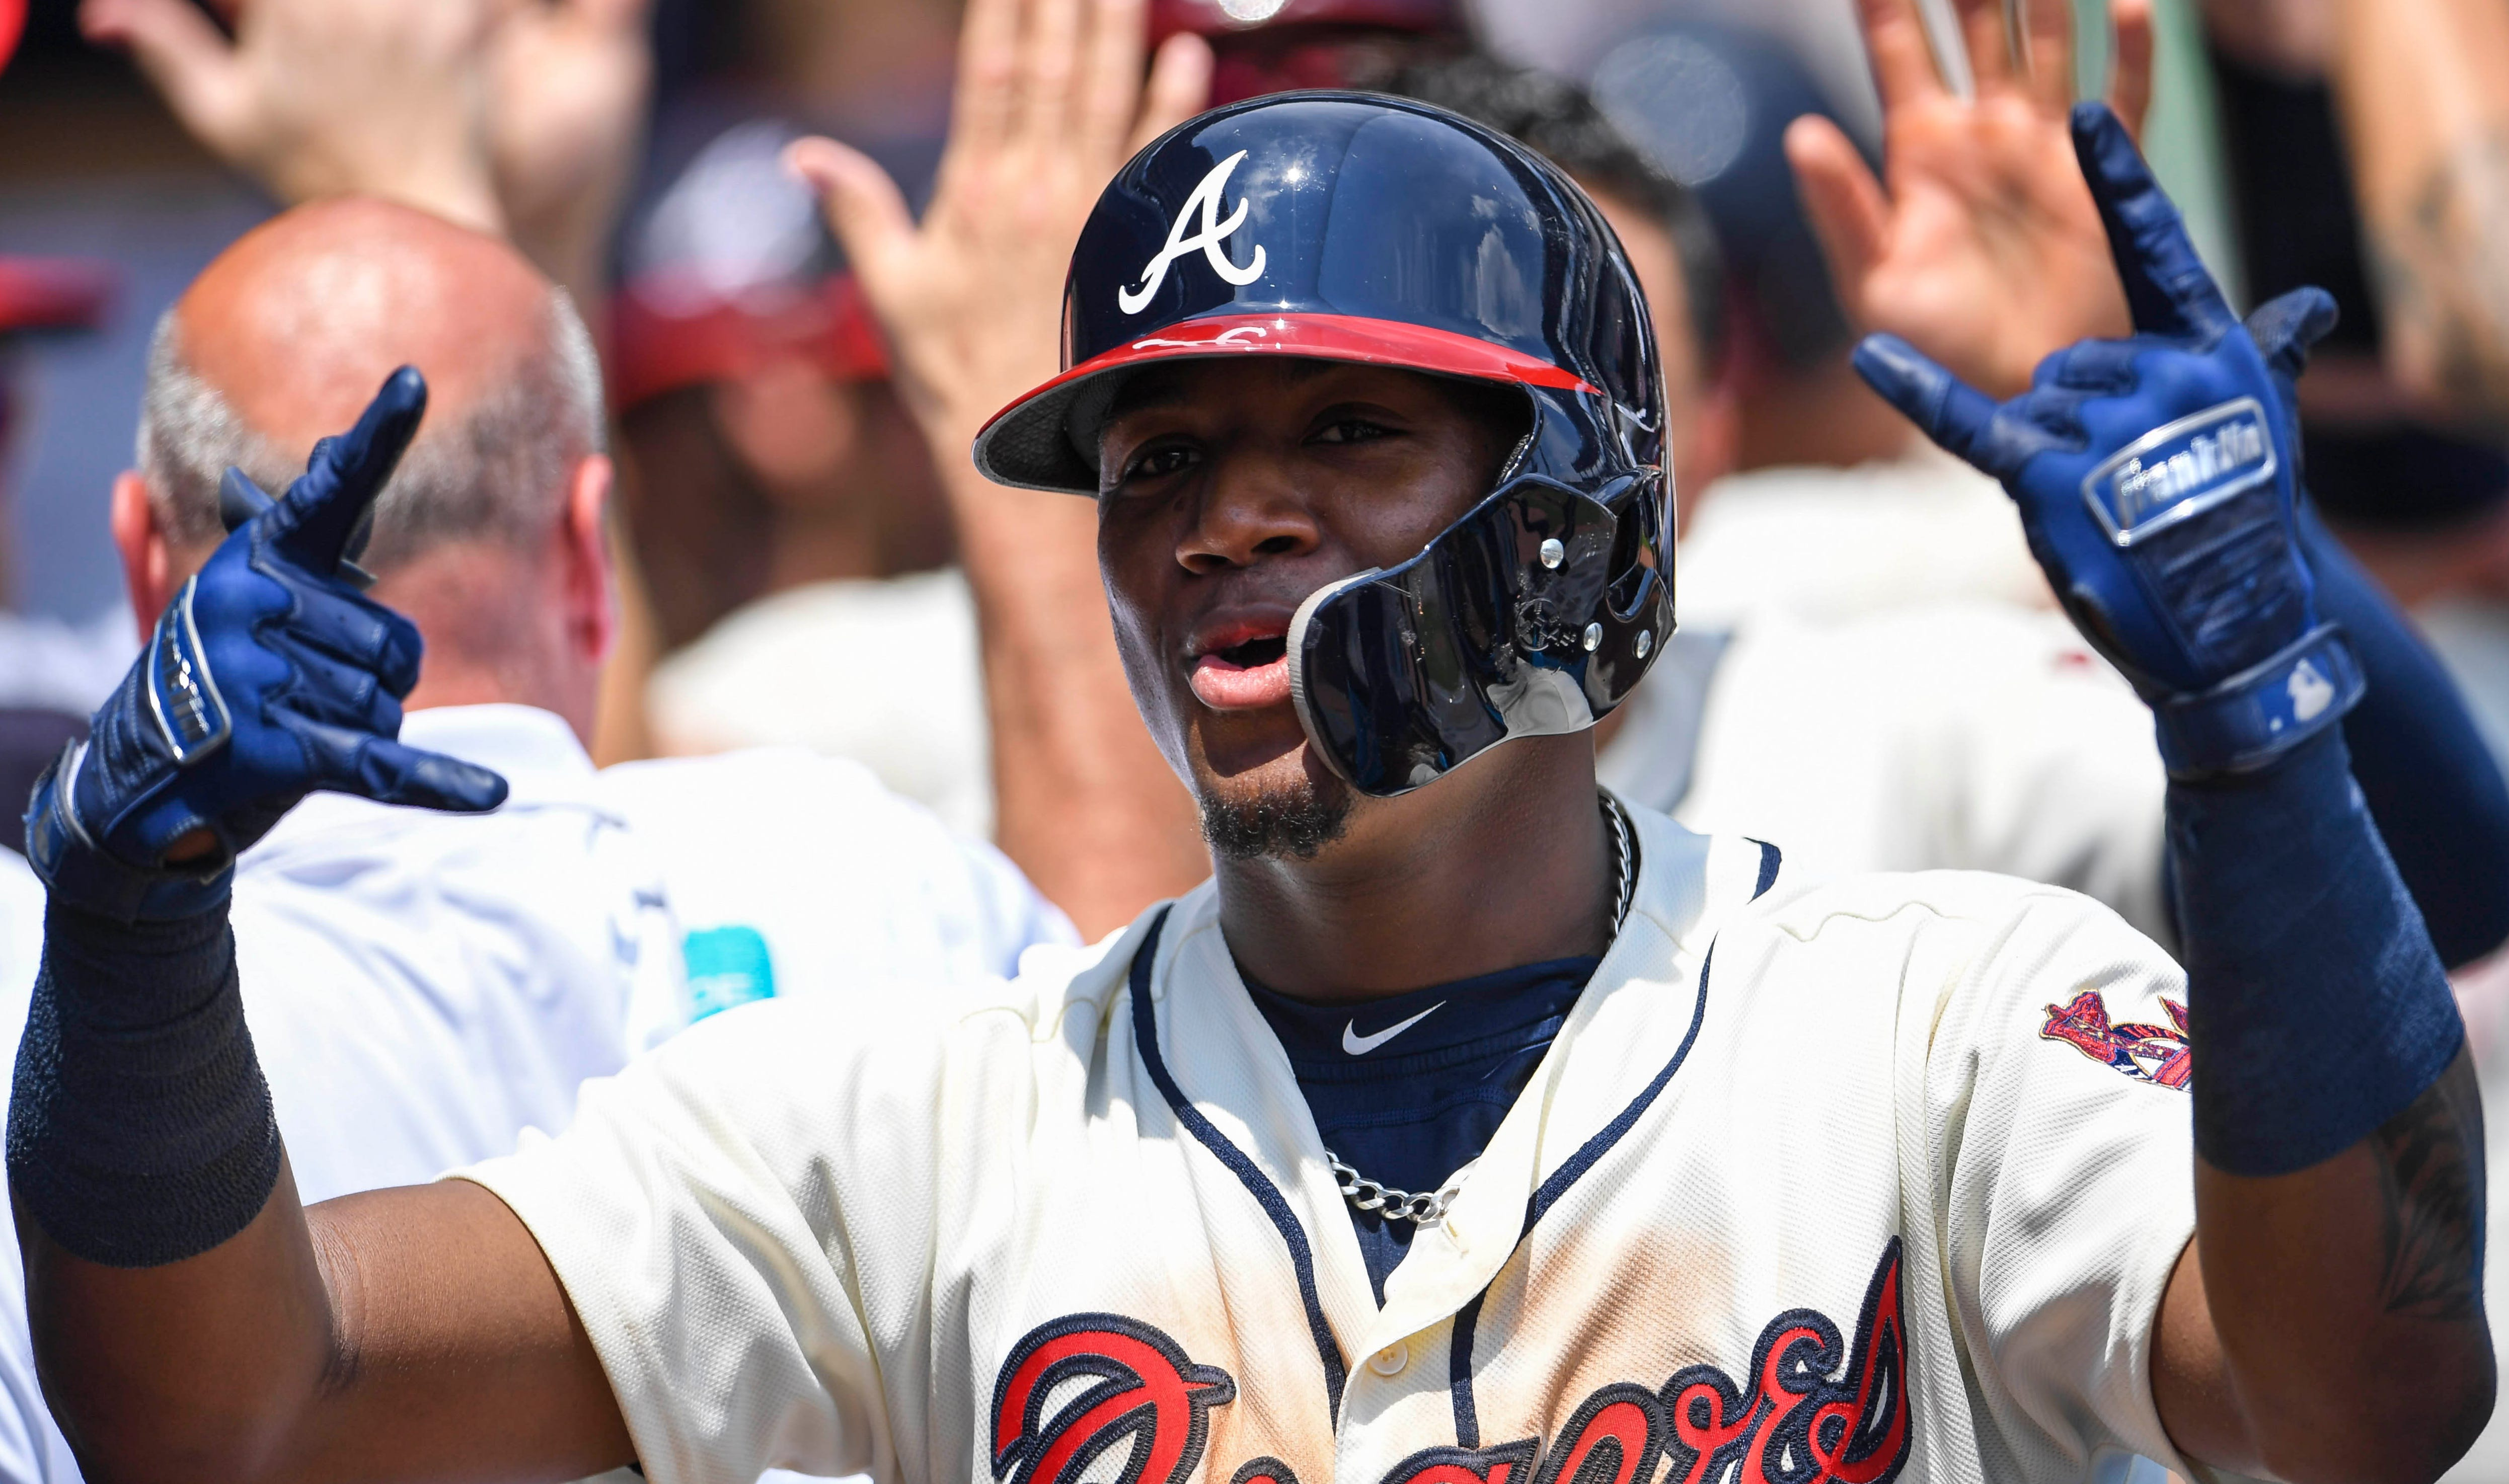 Braves outfielder Ronald Acuna Jr. hit 26 home runs.